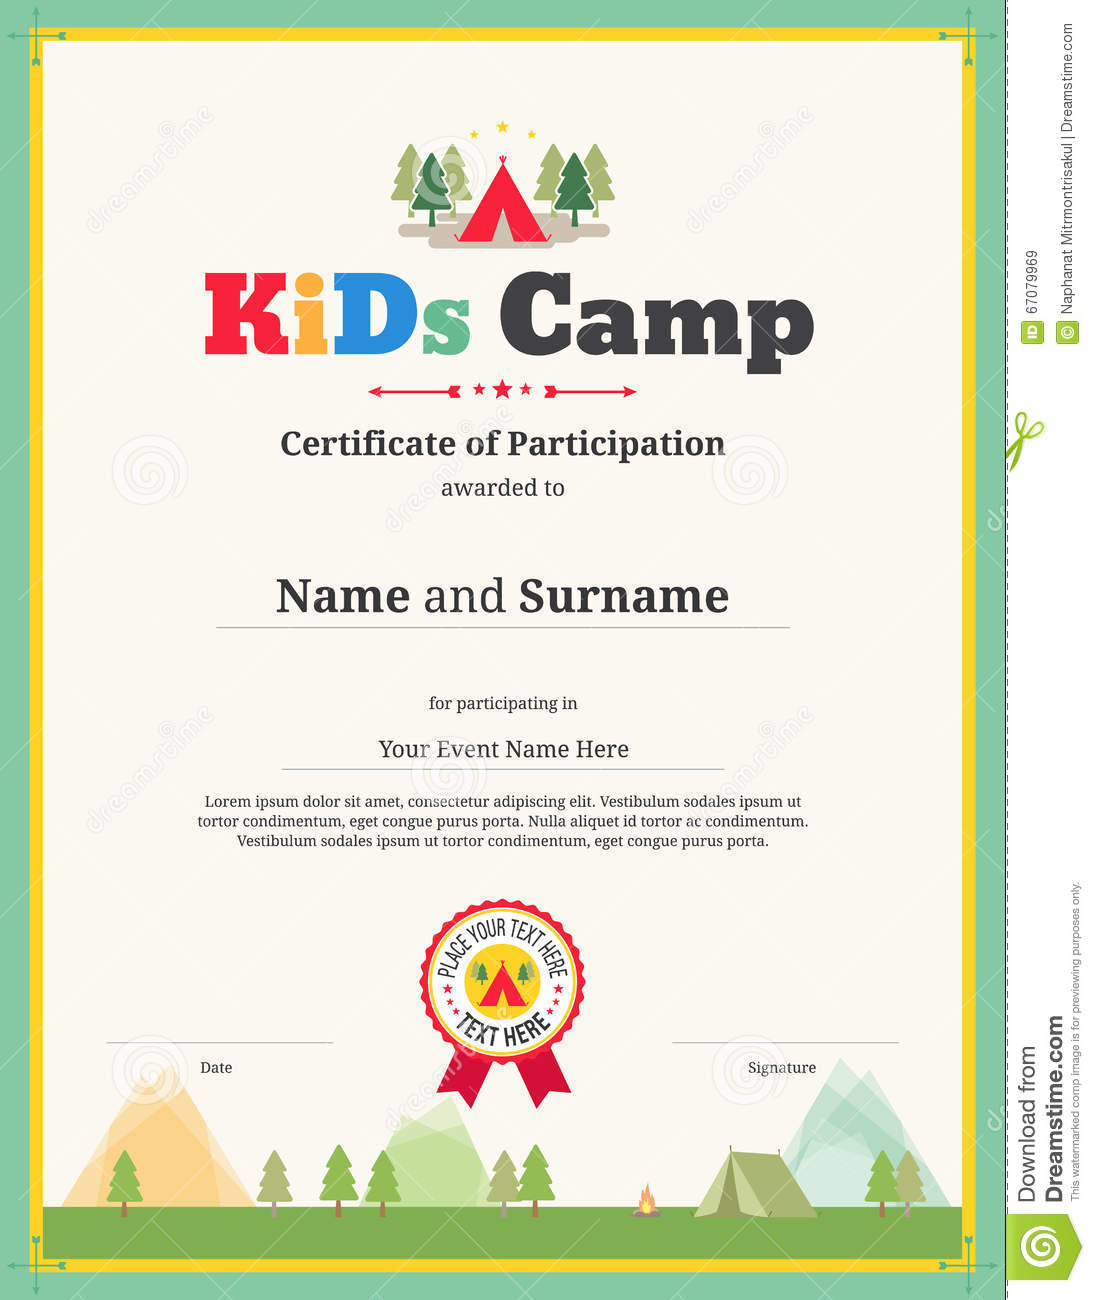 Kids Certificate Template In Vector For Camping Participation. Frame,  Layout.  Certificate Of Participation Template